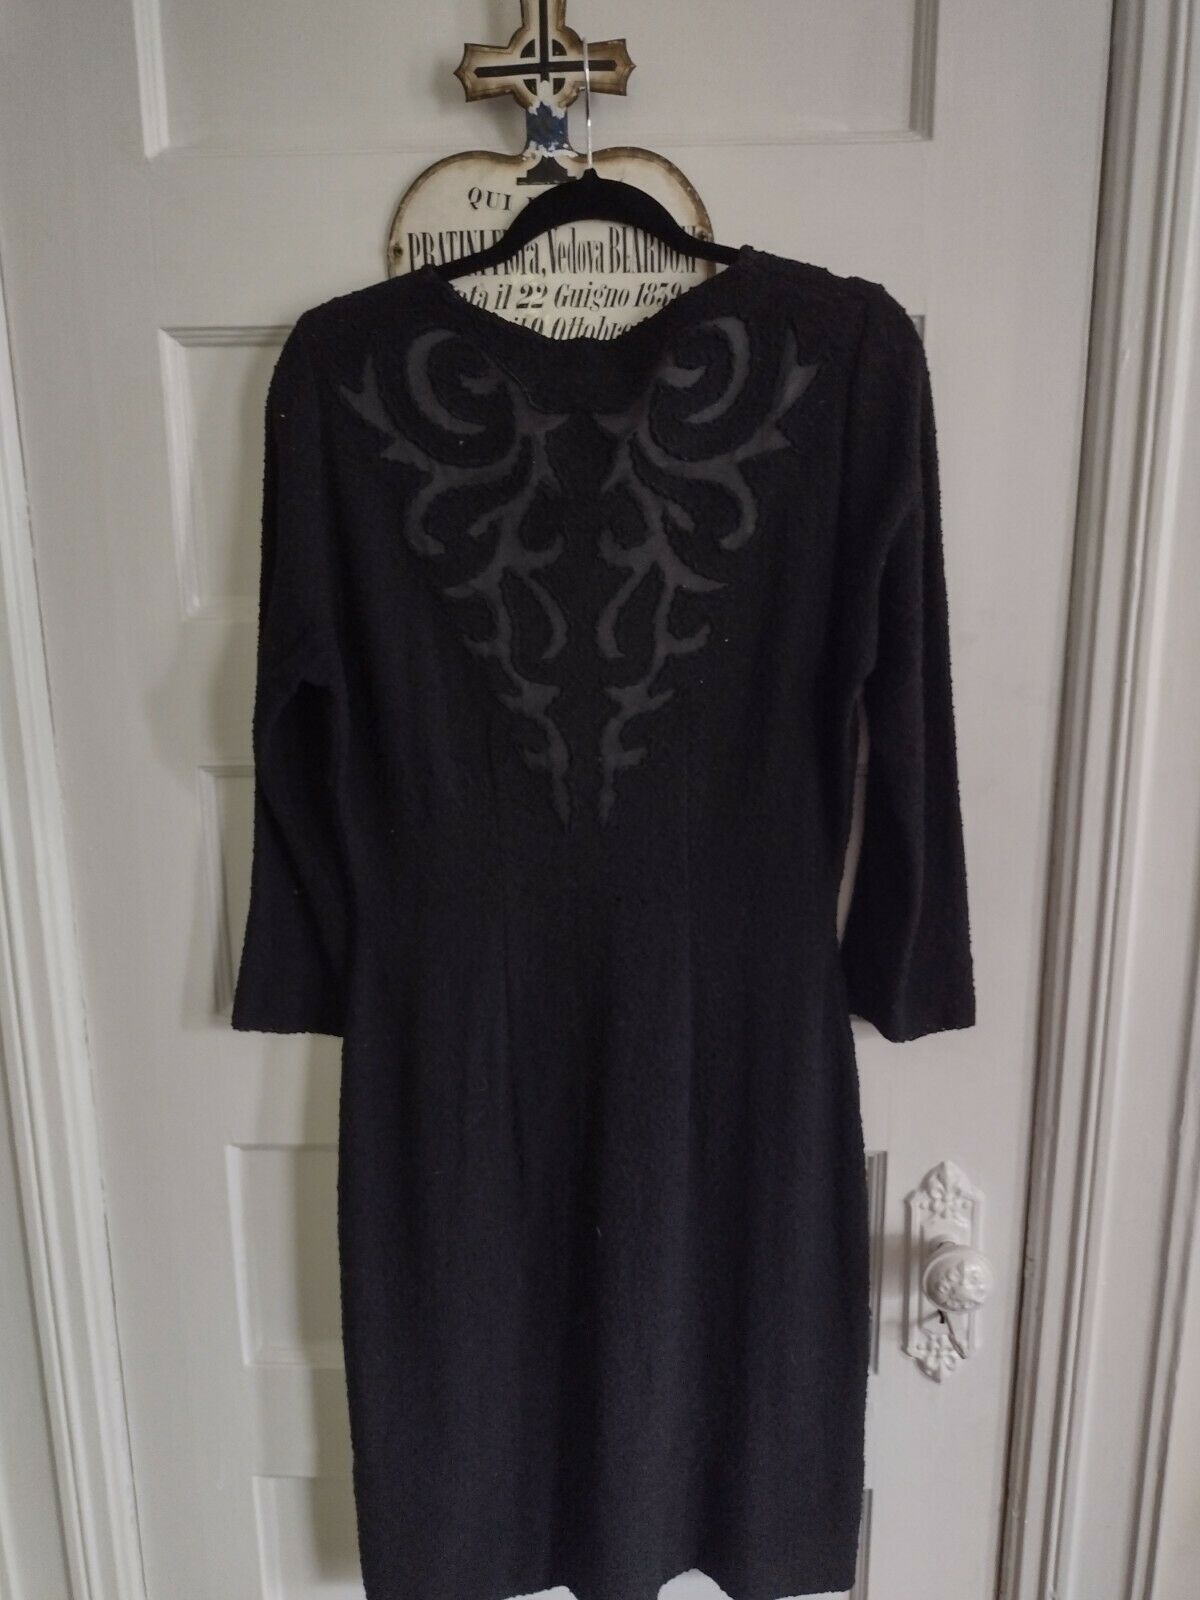 1940s Black Knit Dress With Satin Detail In Volup… - image 6